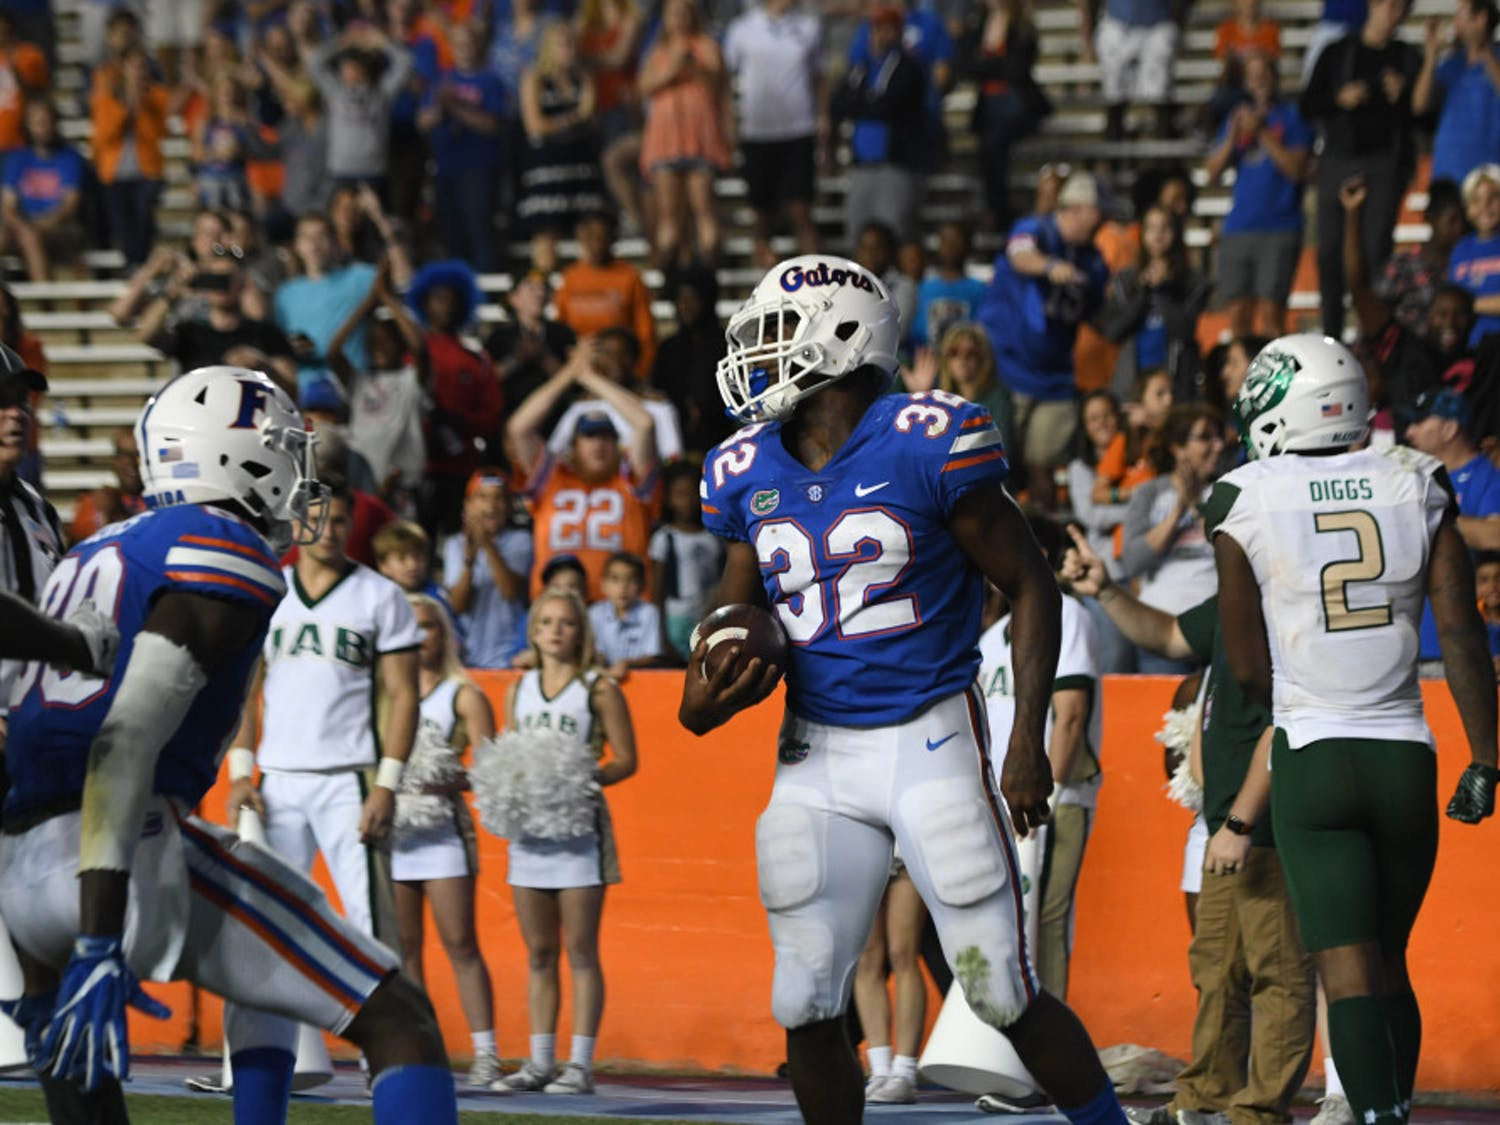 In the team's final five games, UF running backAdarius Lemons registered 136 yards on 19 carries for an average of 7.2 yards per attempt.